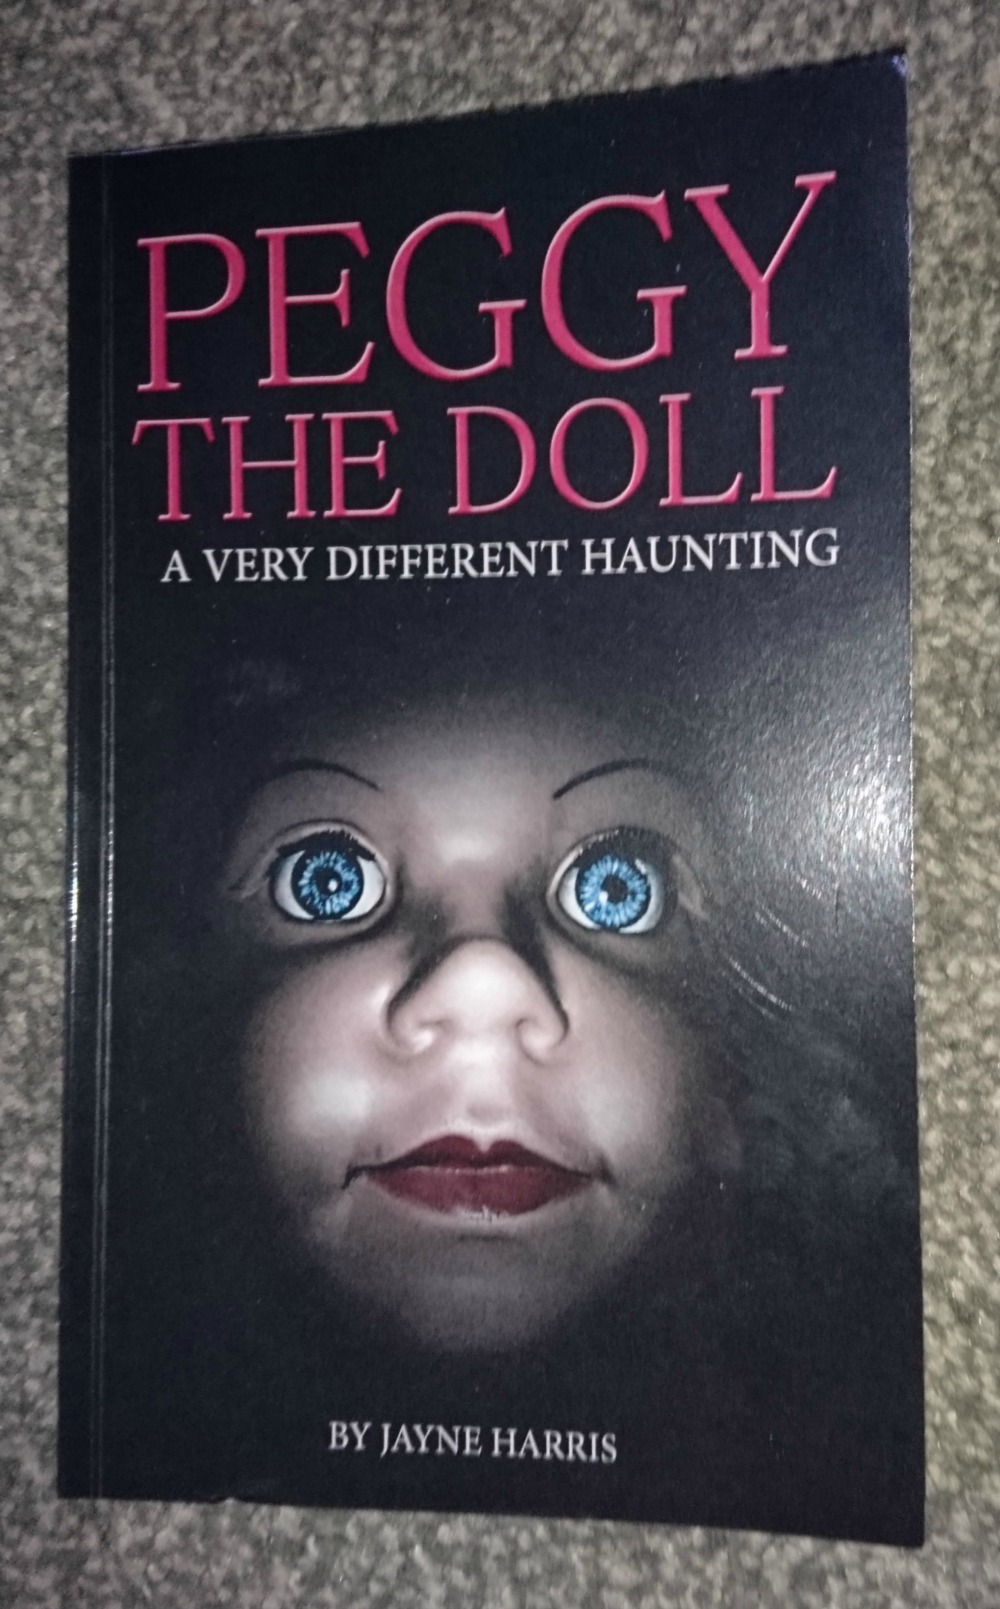 Peggy the Doll by Jayne Harris book cover